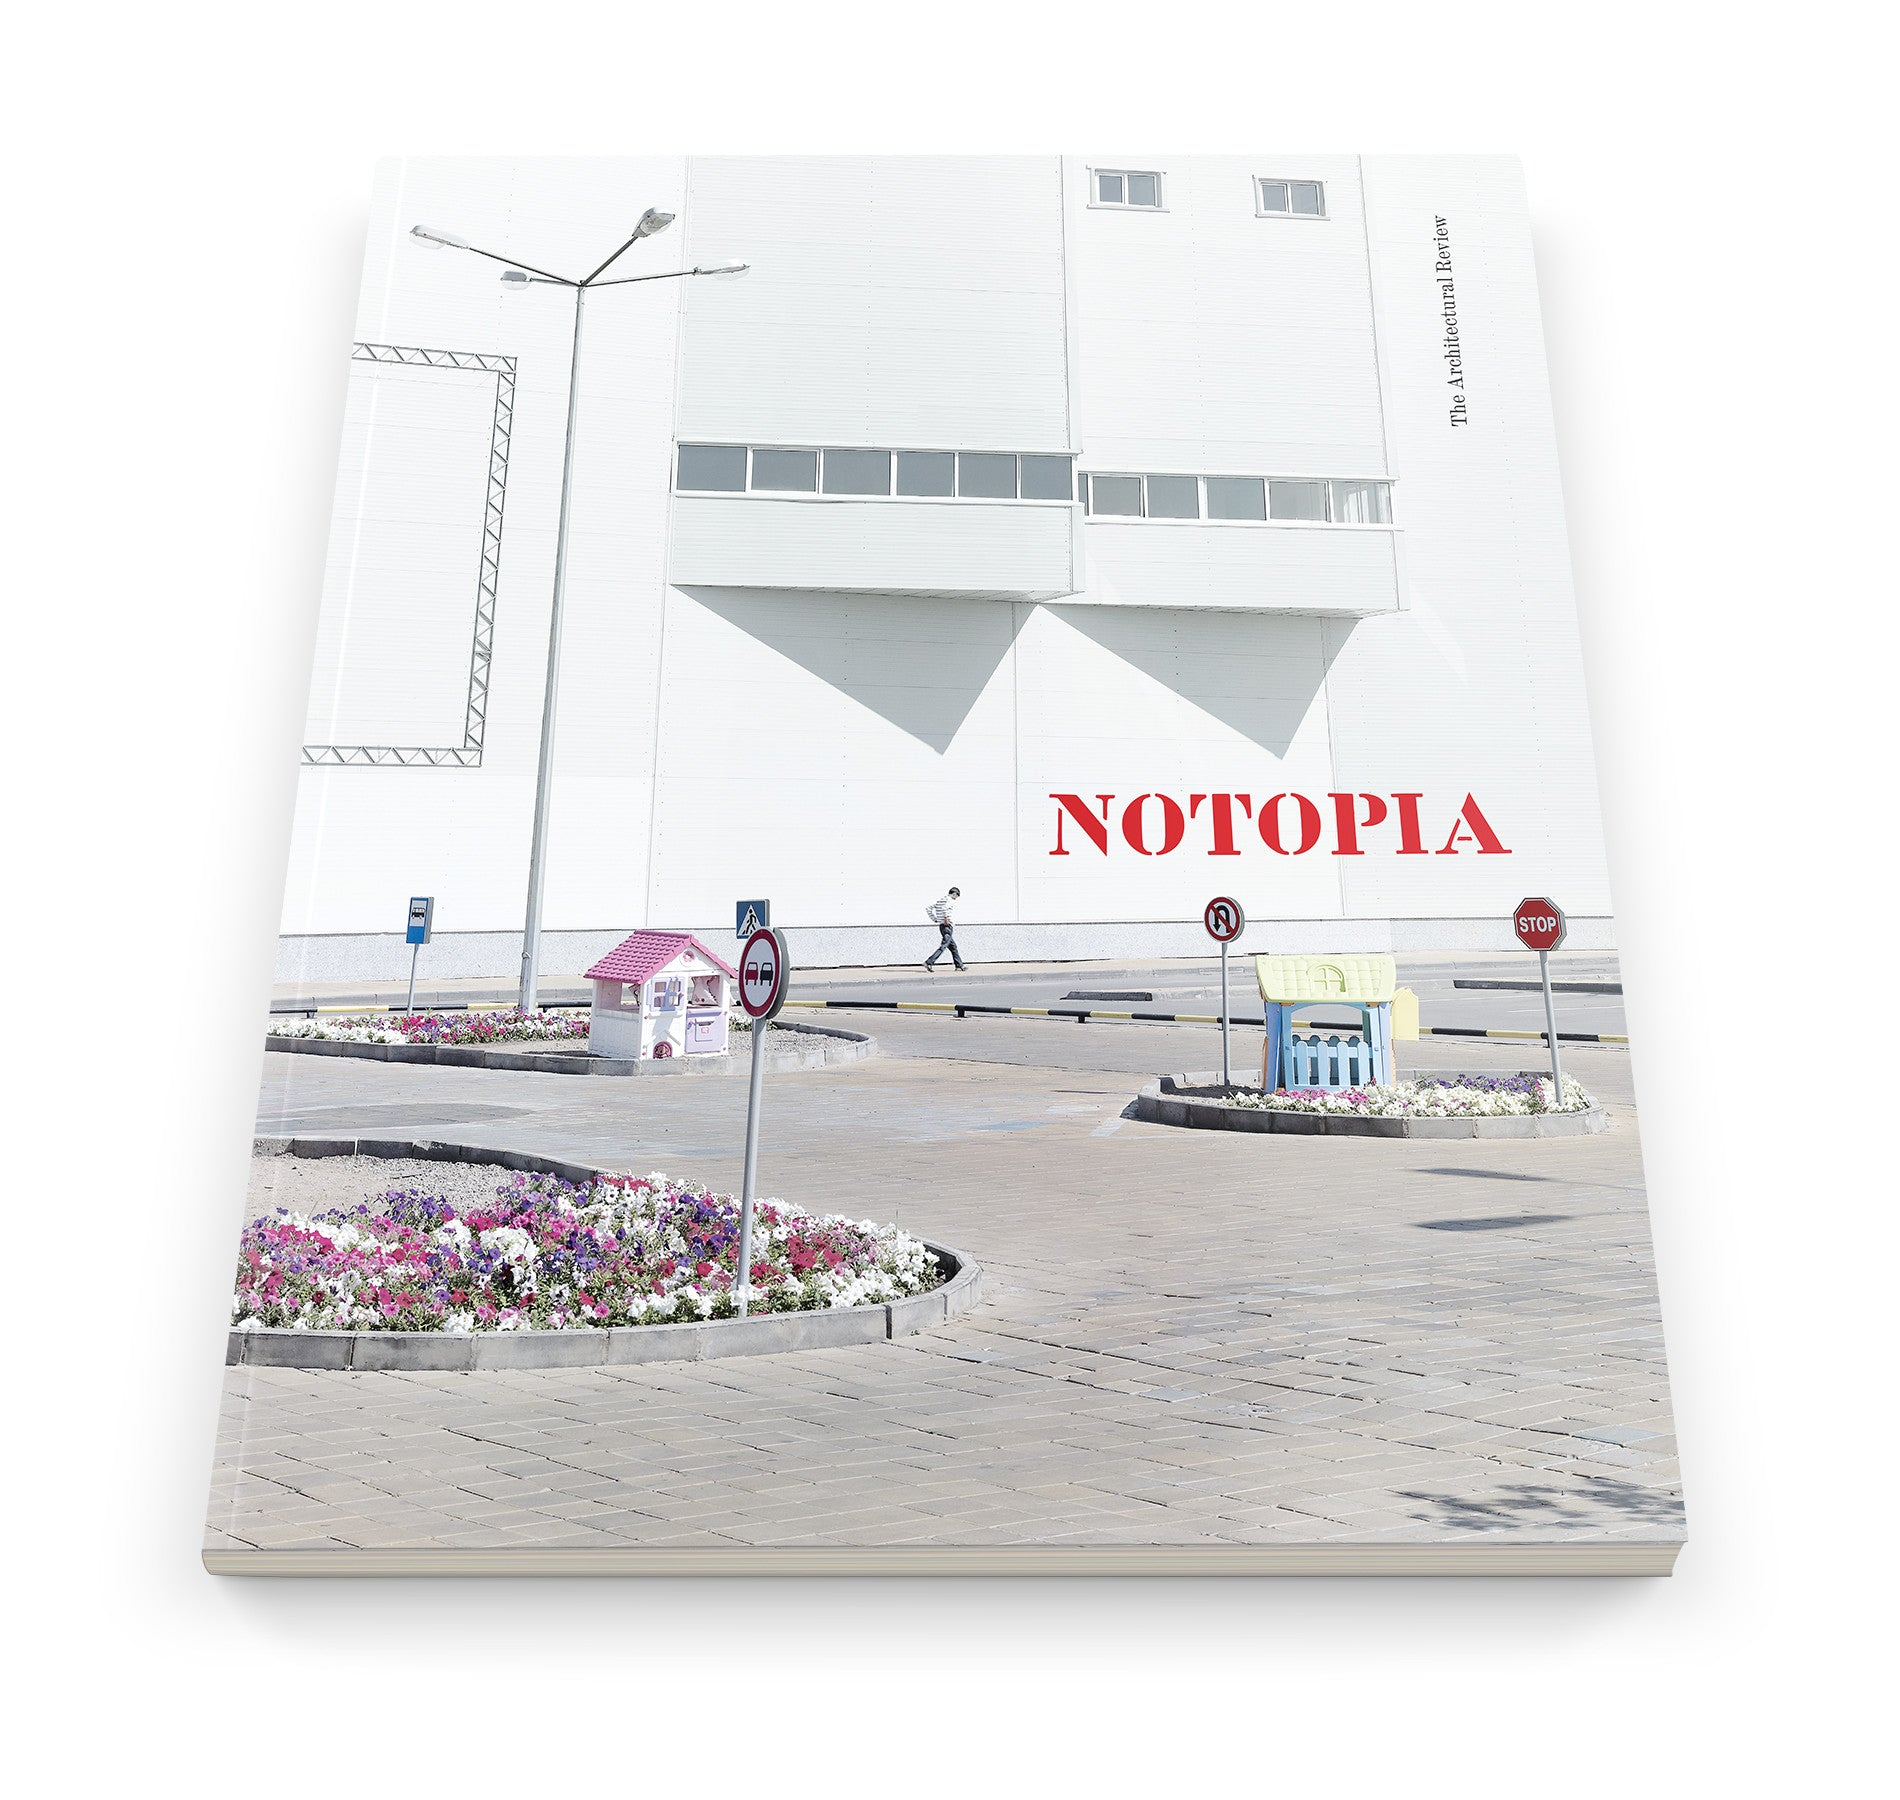 Notopia: The Architectural Review Issue 1432, June 2016